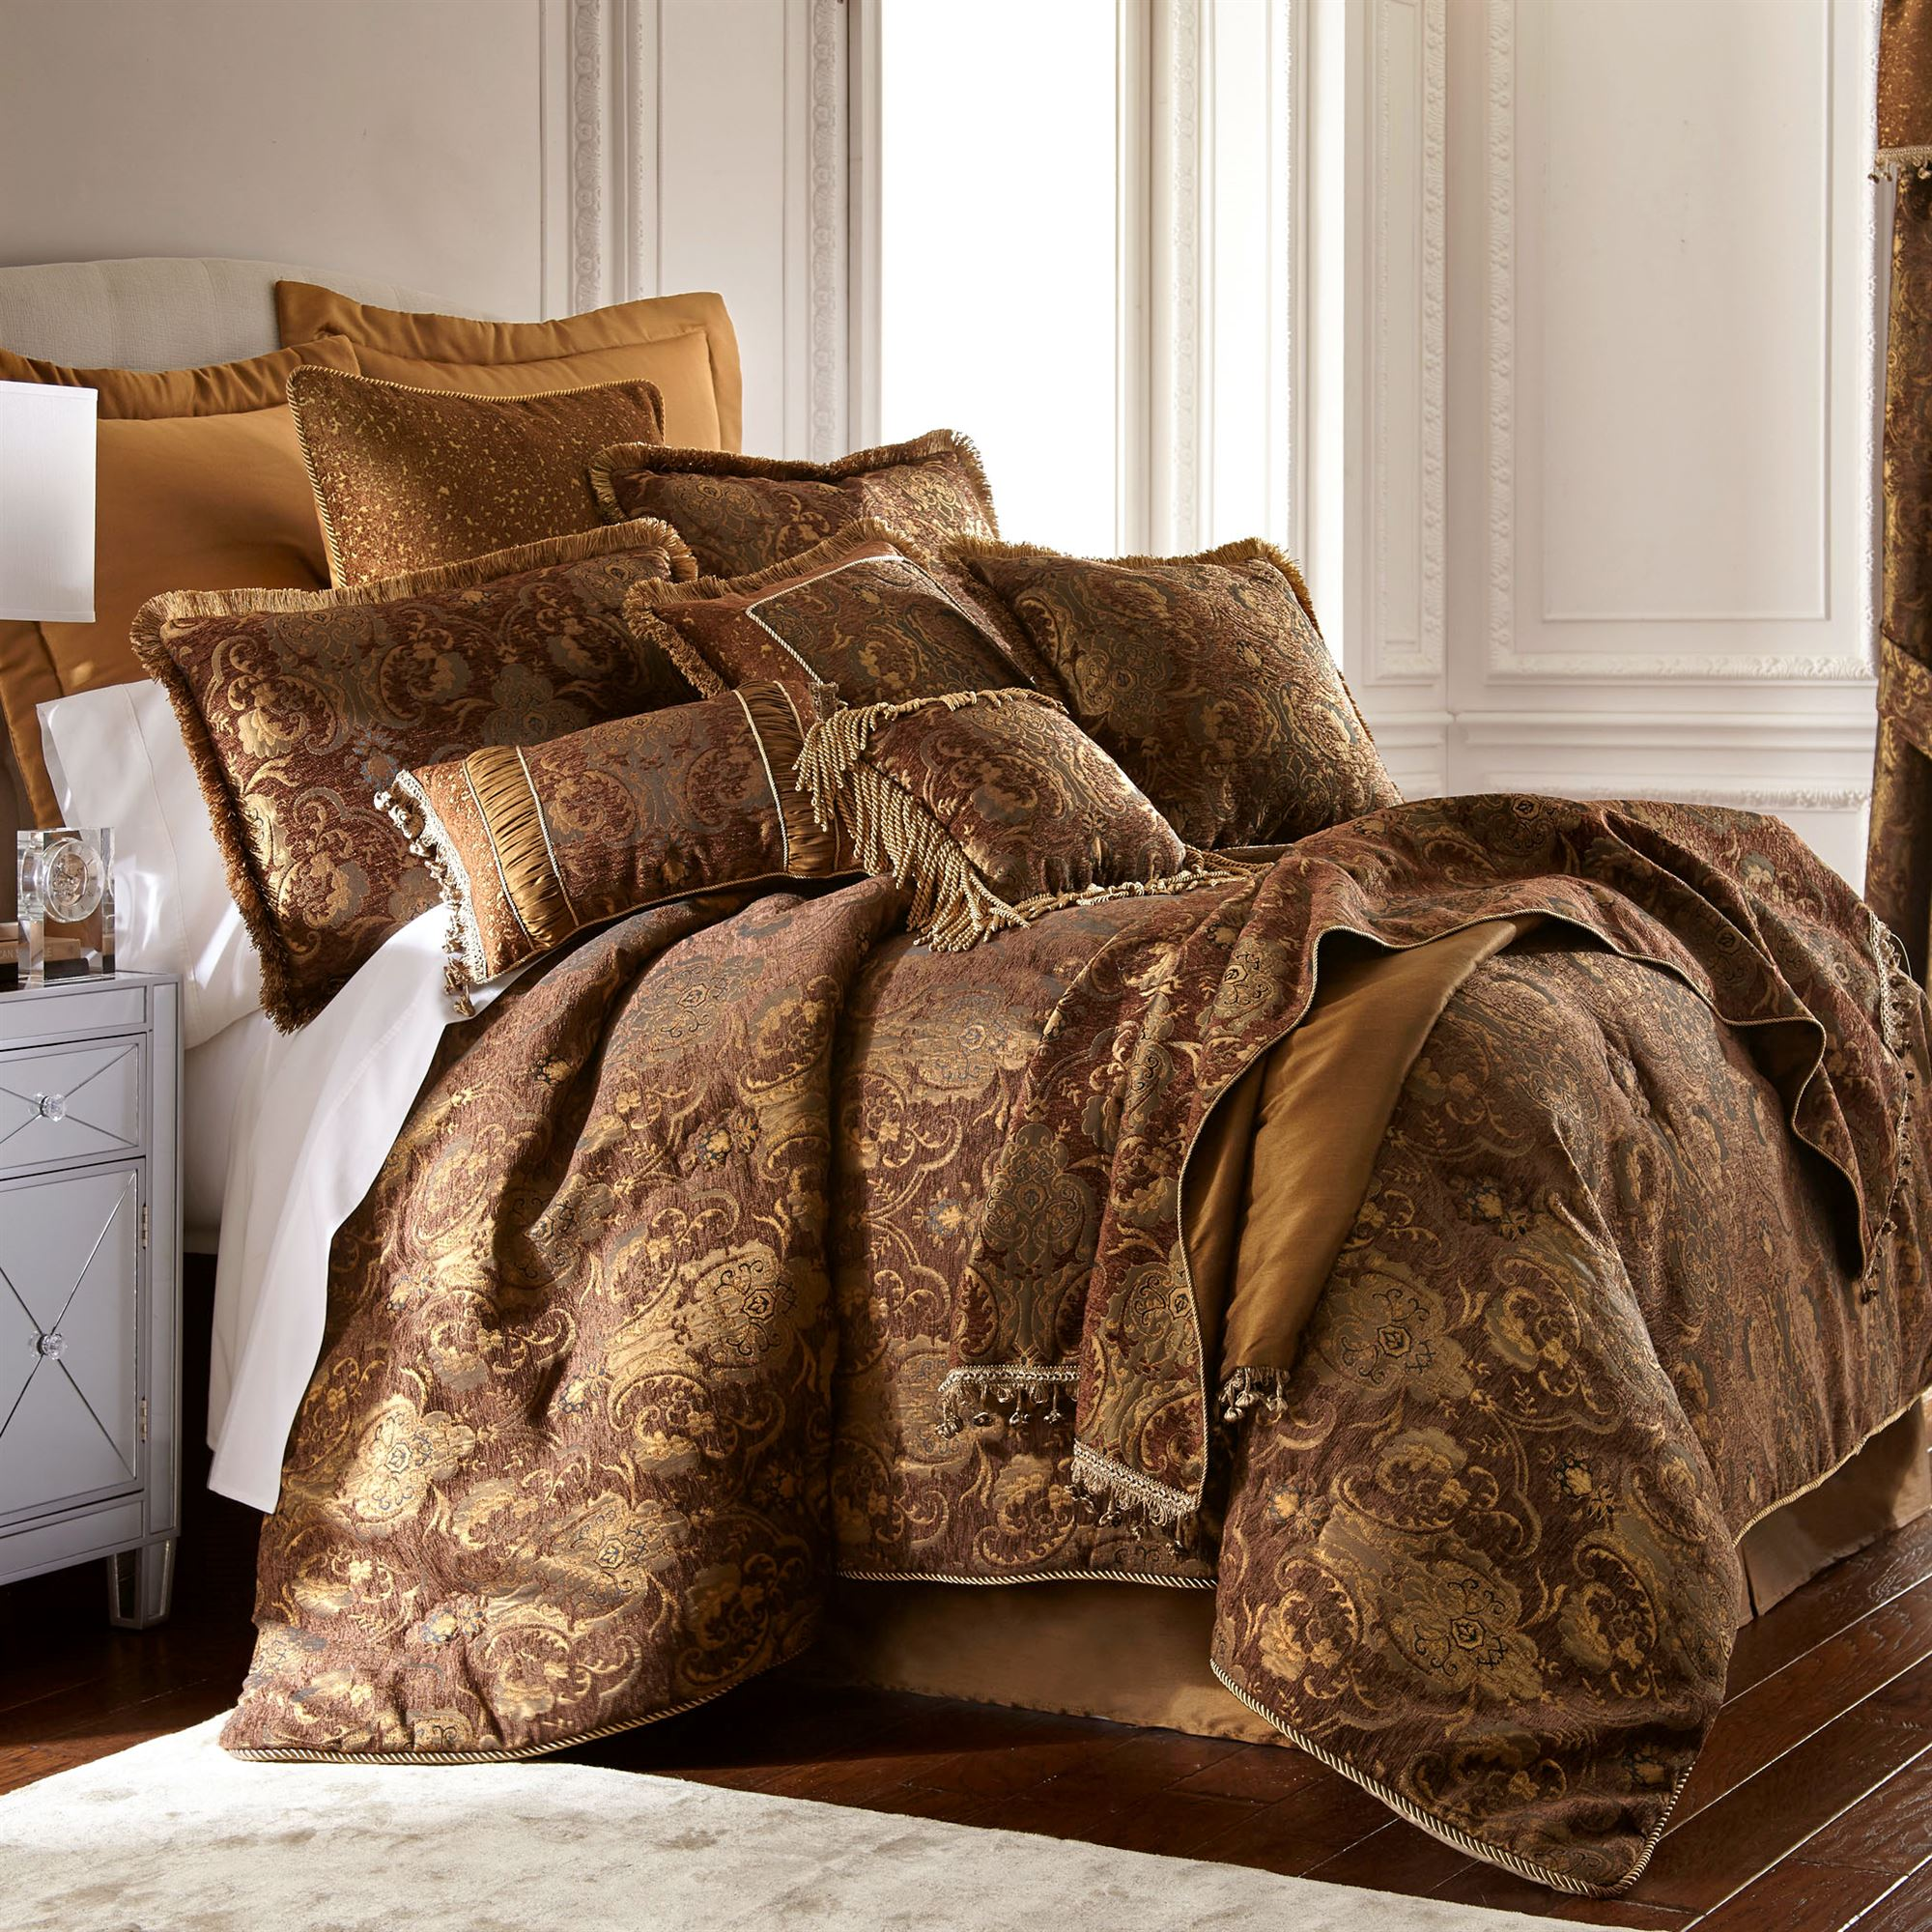 comforter bedding set piece regal kline art sherry innovative